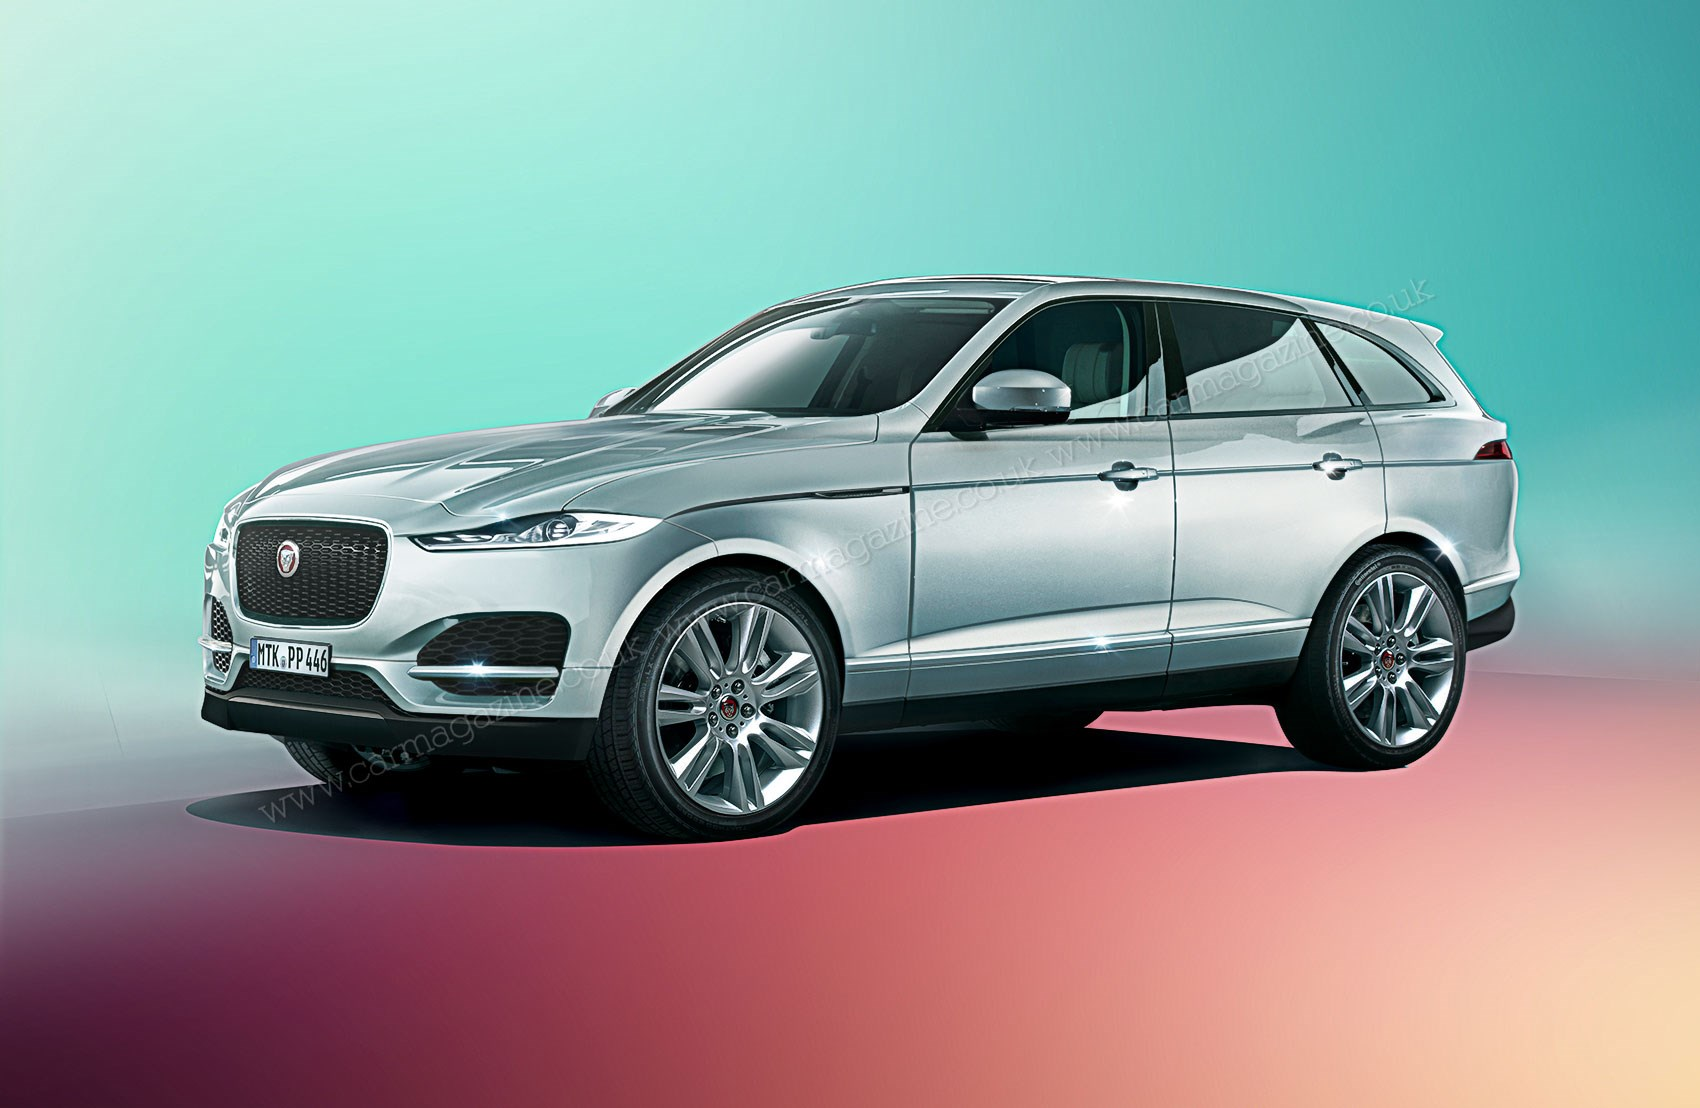 new release jaguar carIs this dieselelectric hybrid a testbed for new Jaguar JPace by